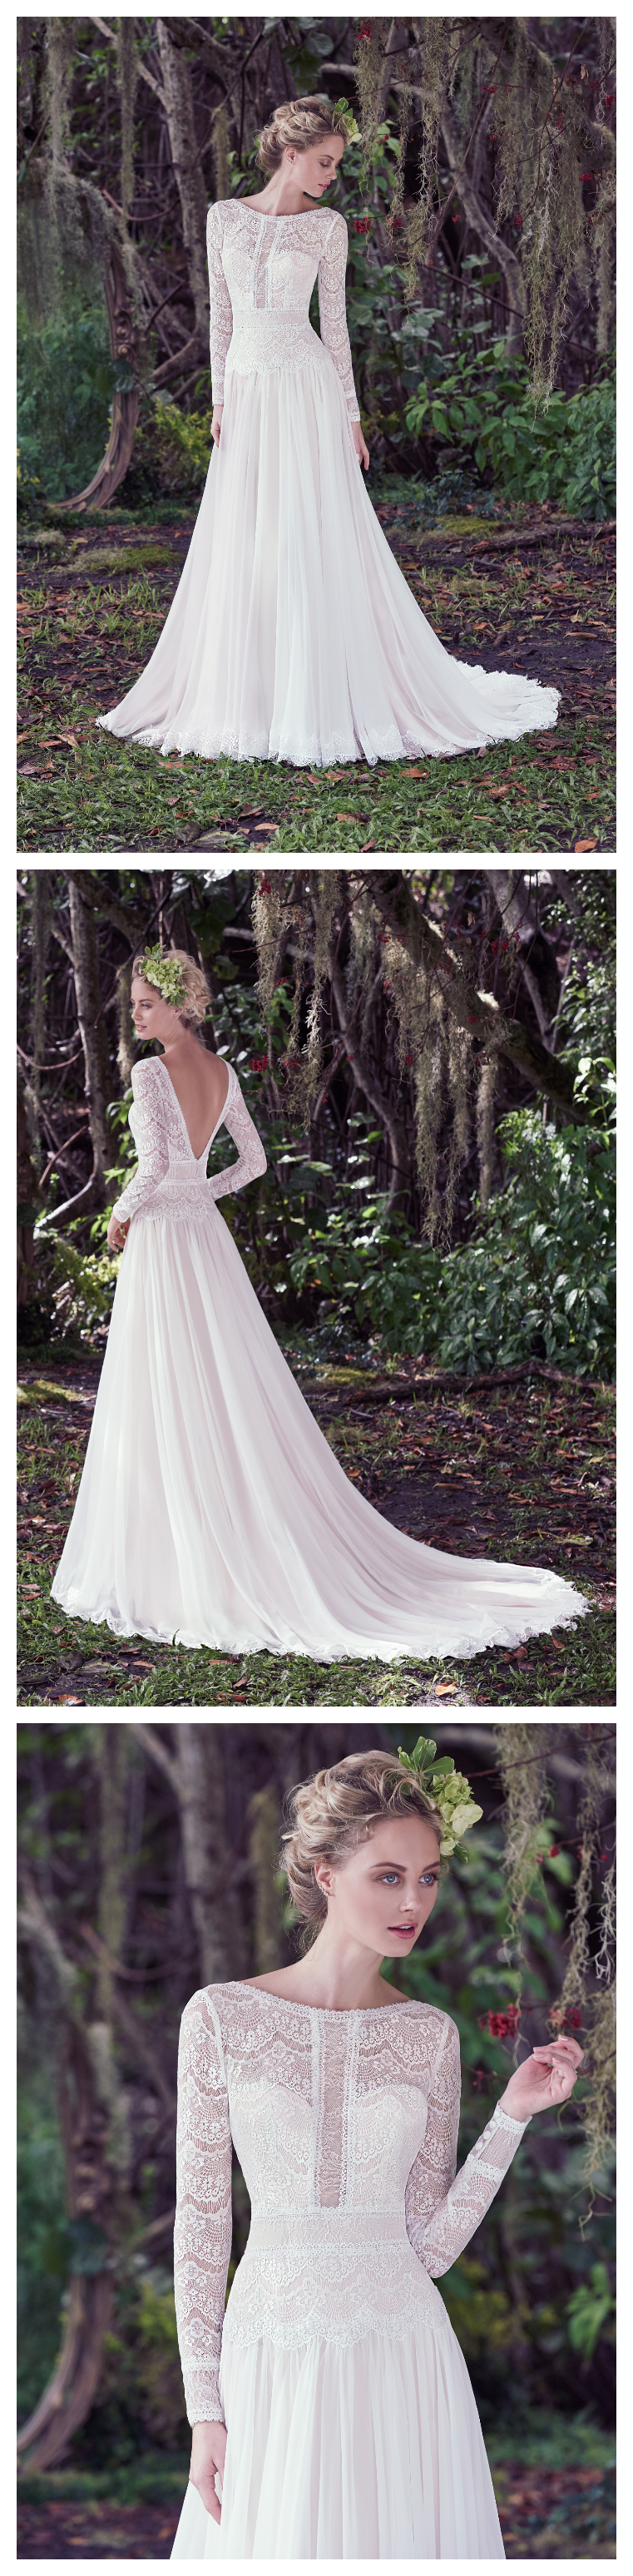 Wedding dress with long sleeves  Deirdre by Maggie Sottero This long sleeve wedding dress is made of